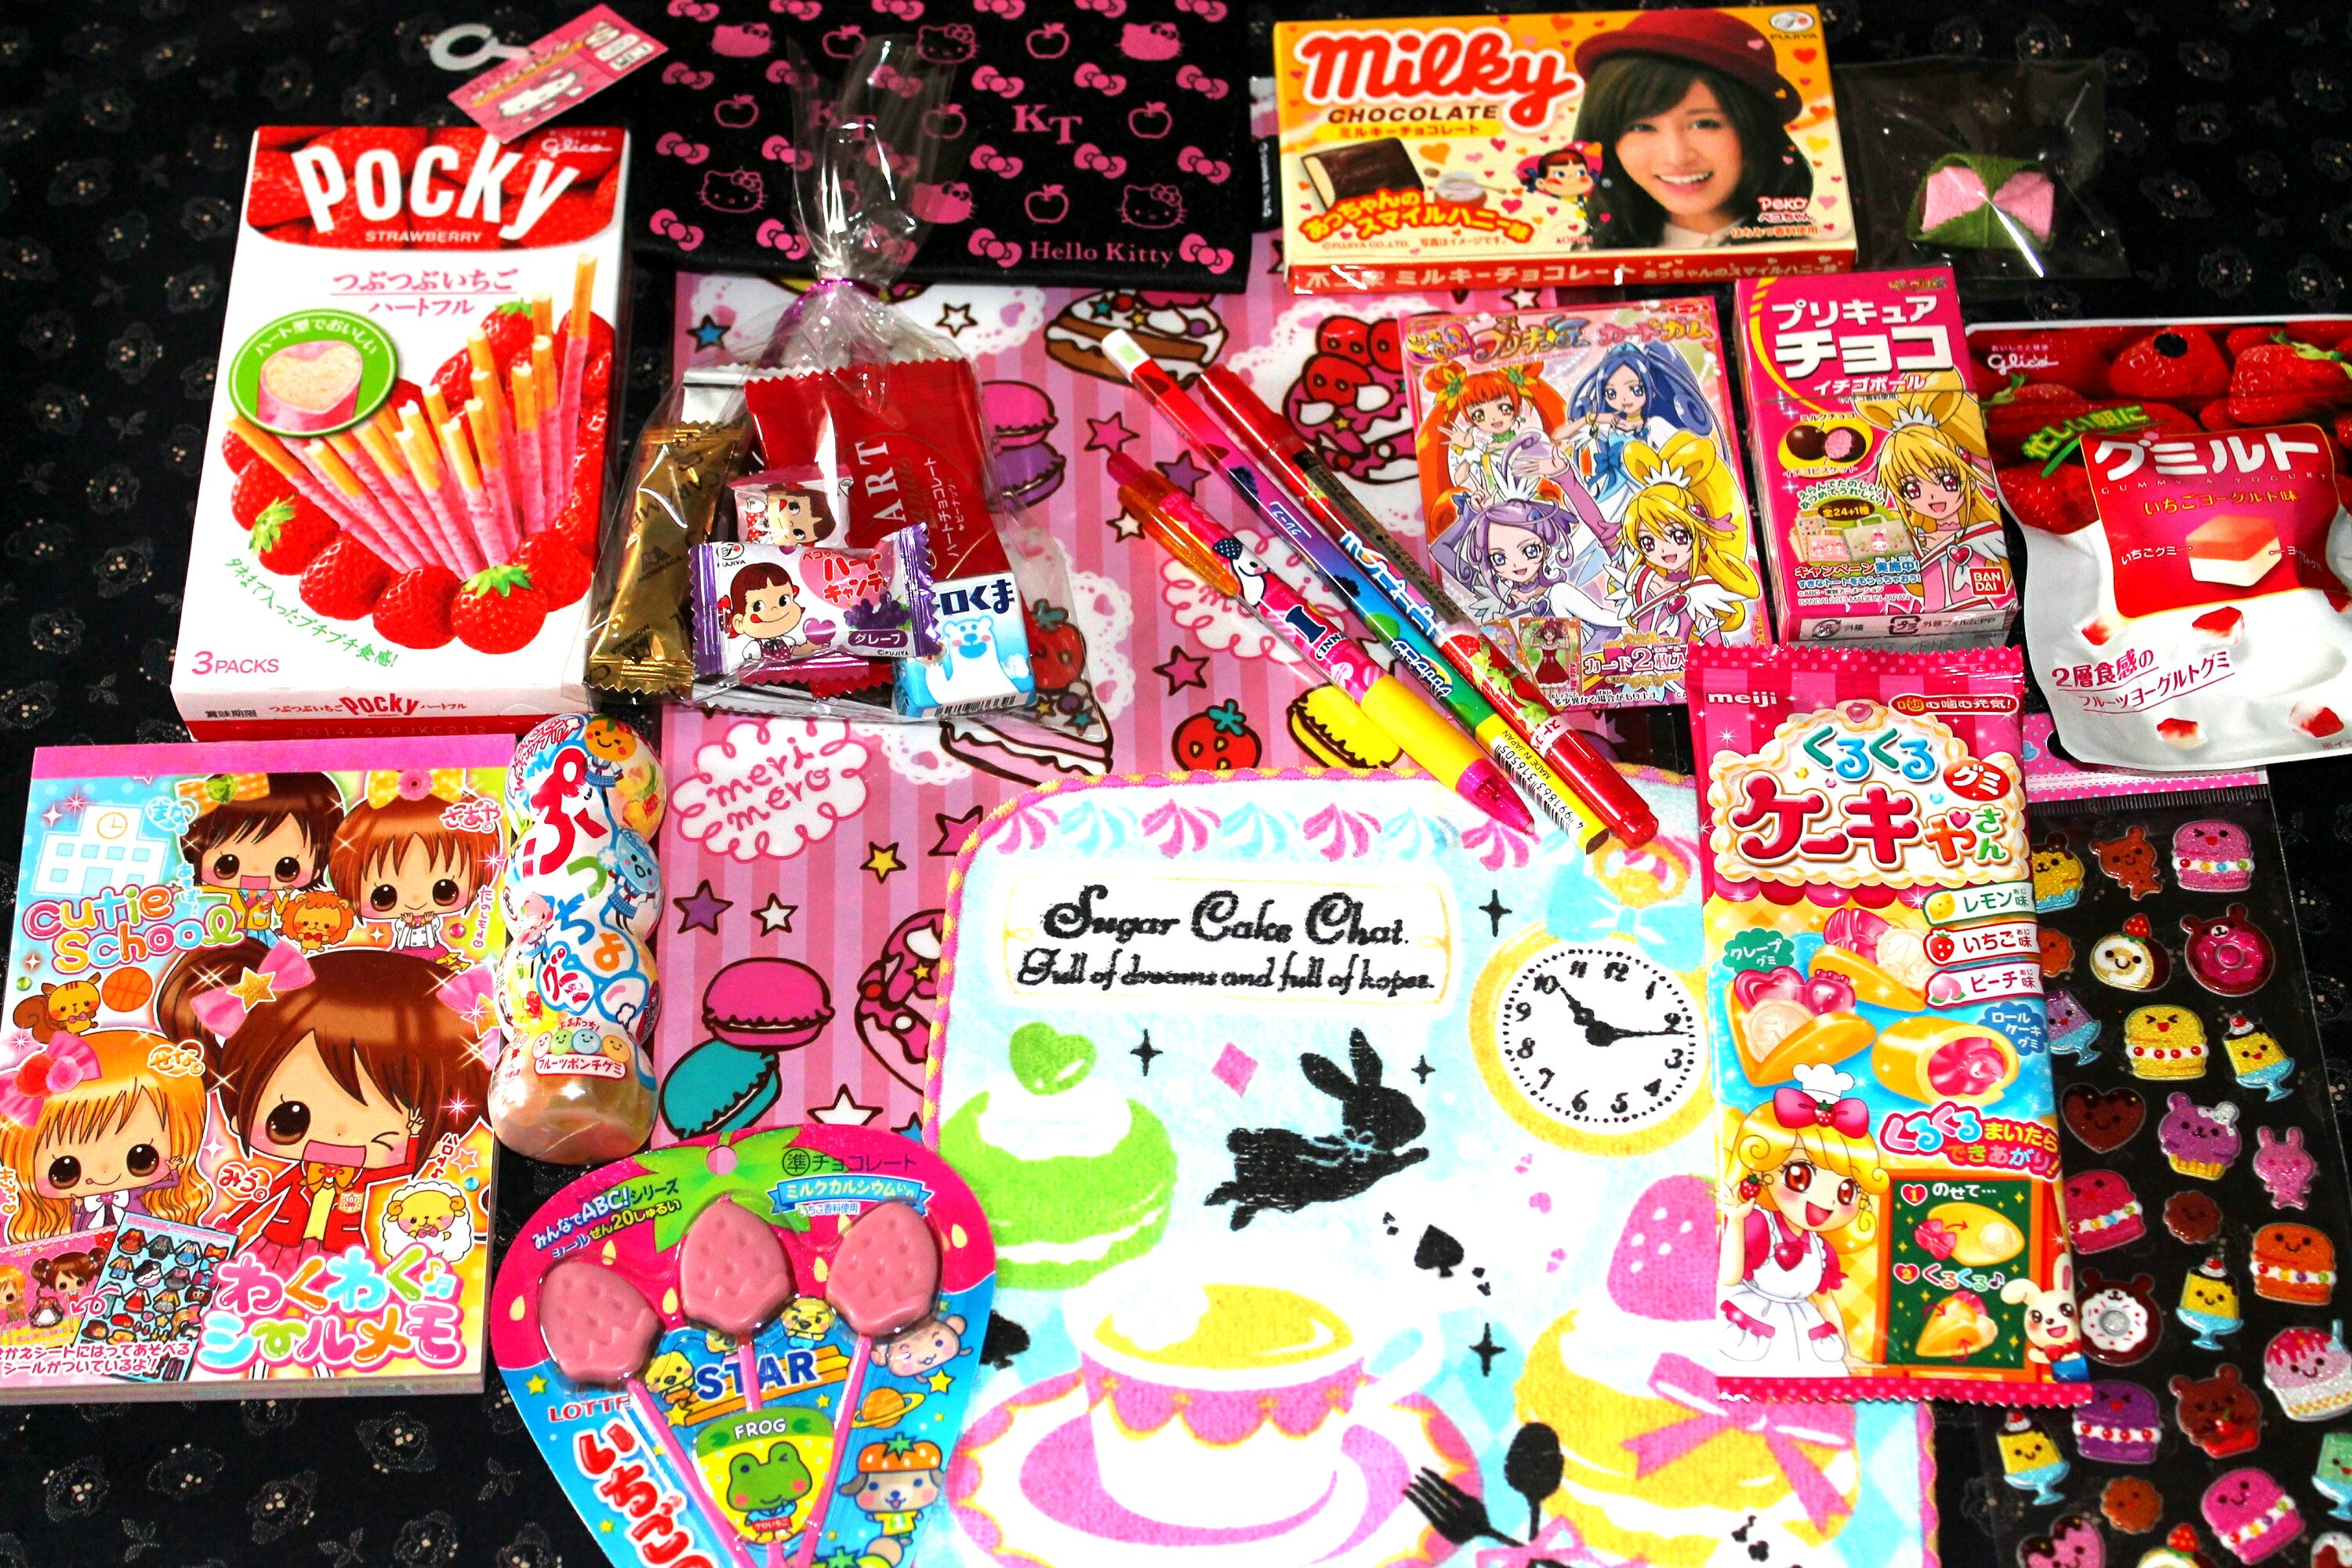 Candy and goods 183 kawaii surprises japan 183 online store powered by